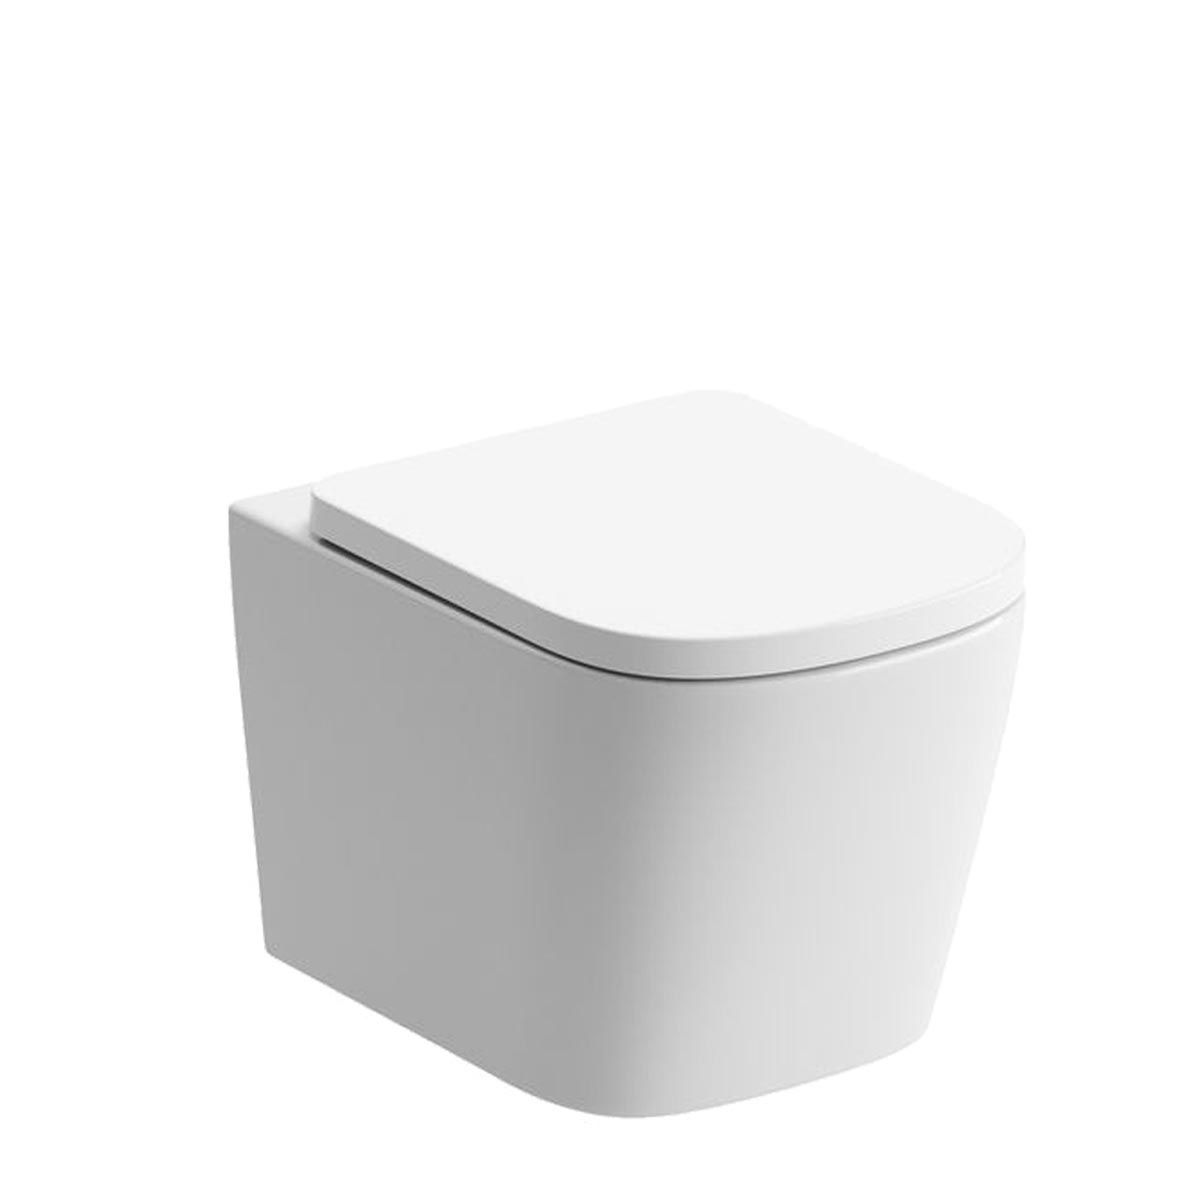 BTL Tilia Rimless Wall Mounted Toilet with Soft Close Seat